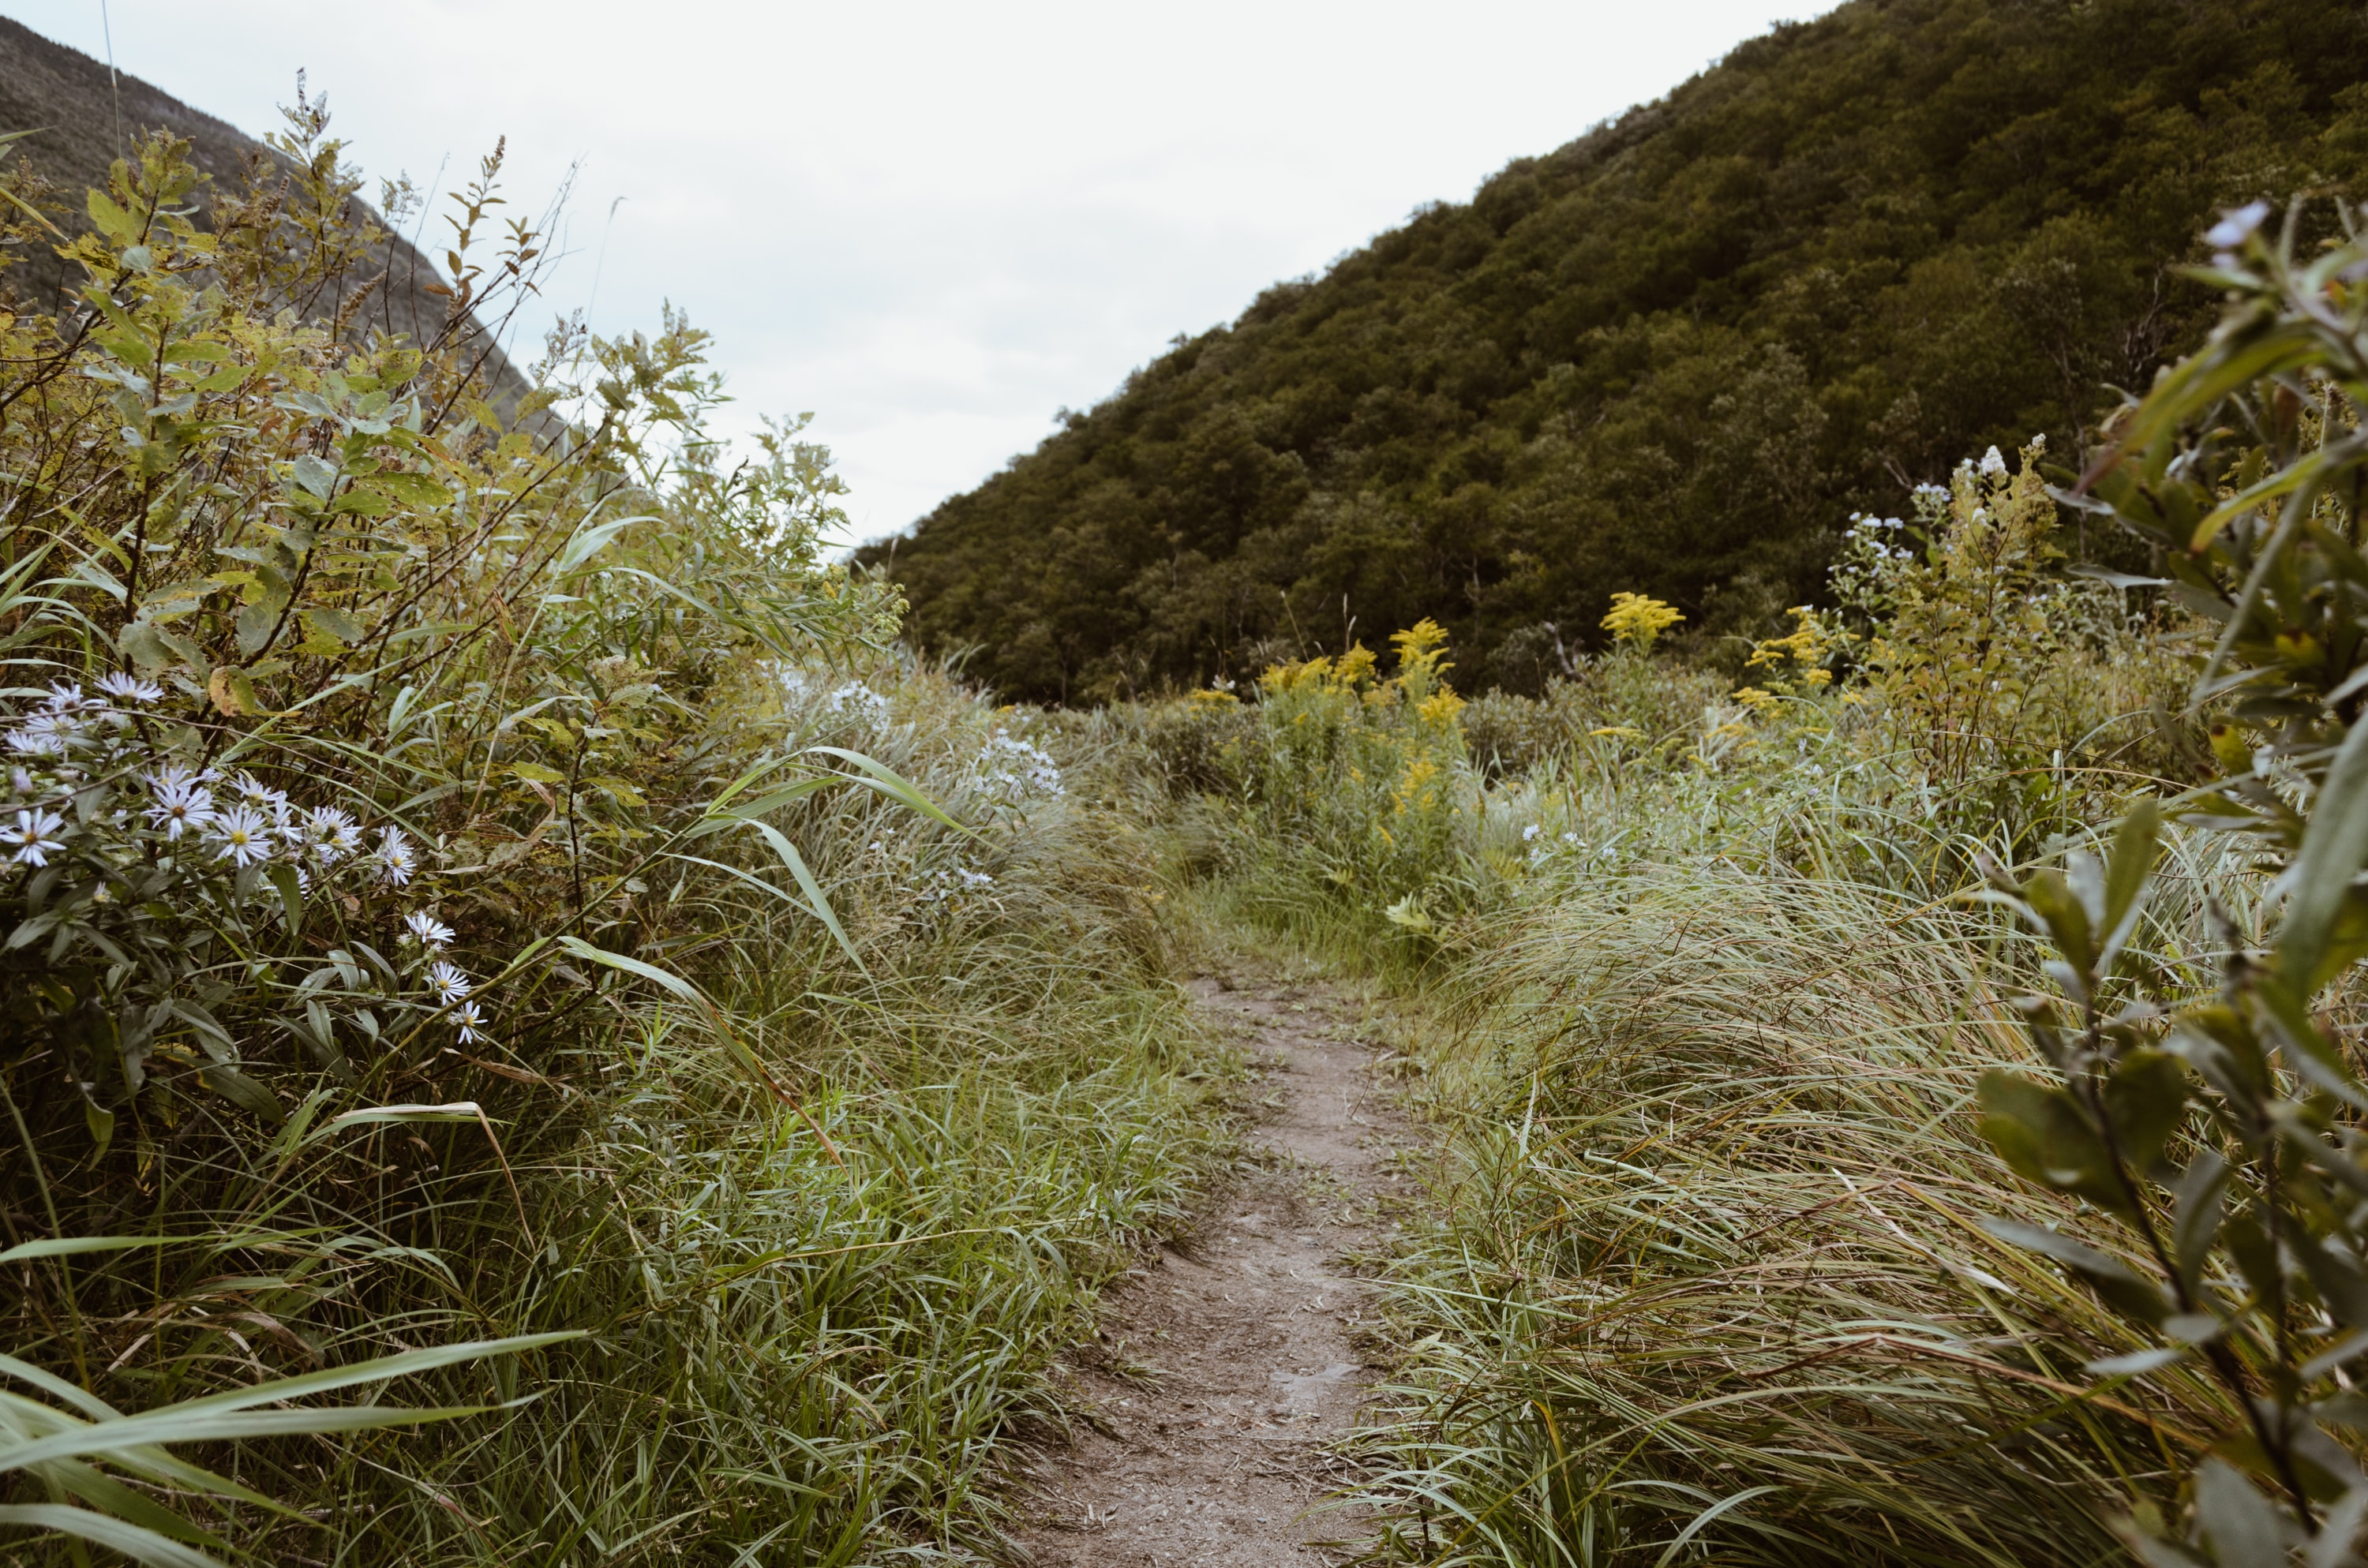 pathway on grass field beside on hill during daytime